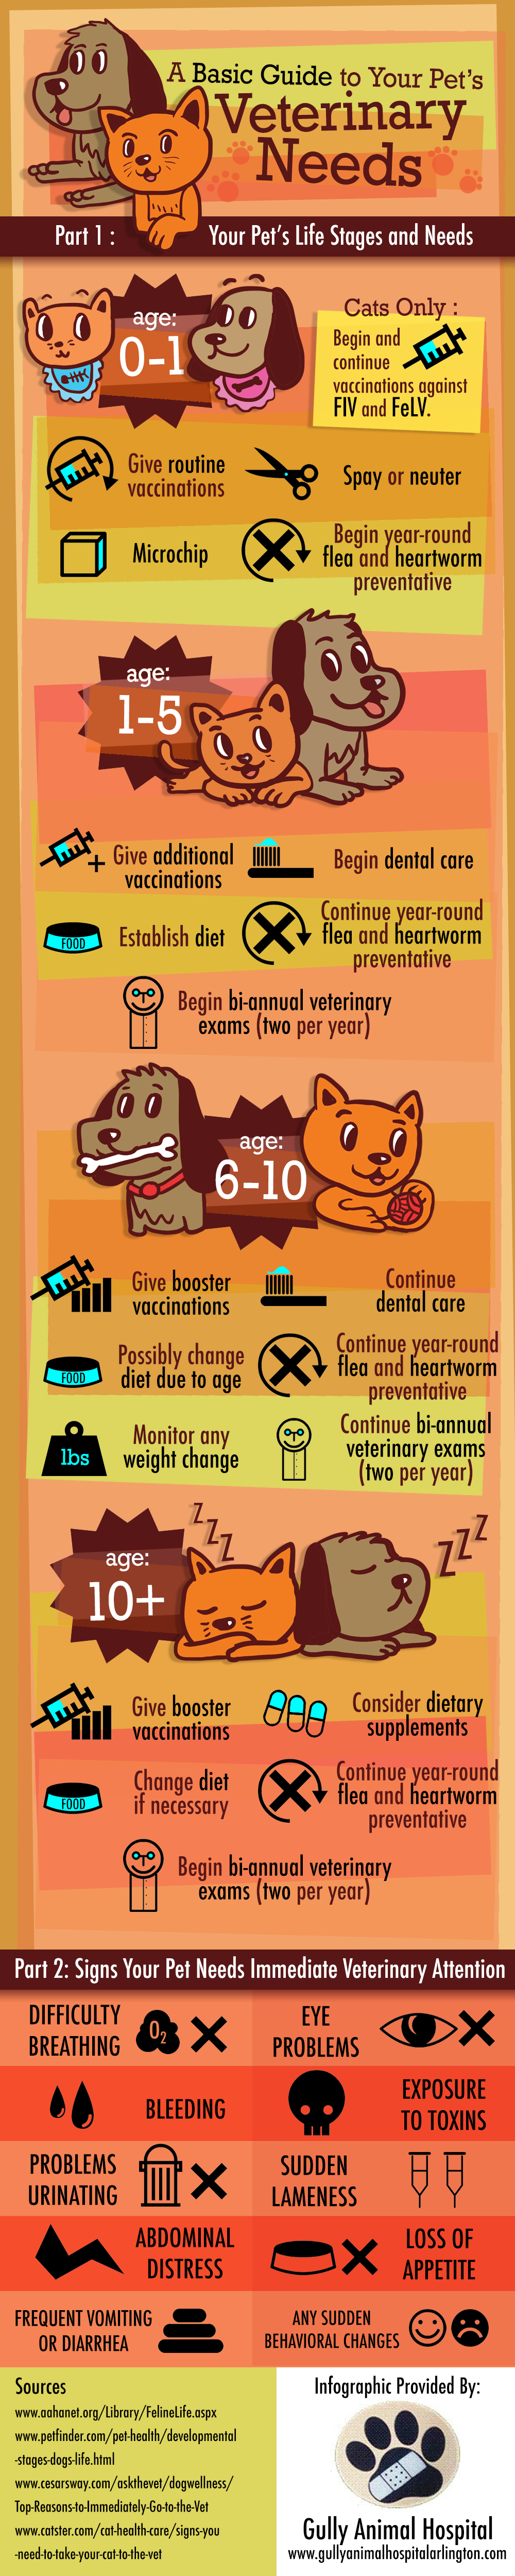 A Basic Guide to Your Pet's Veterinary Needs